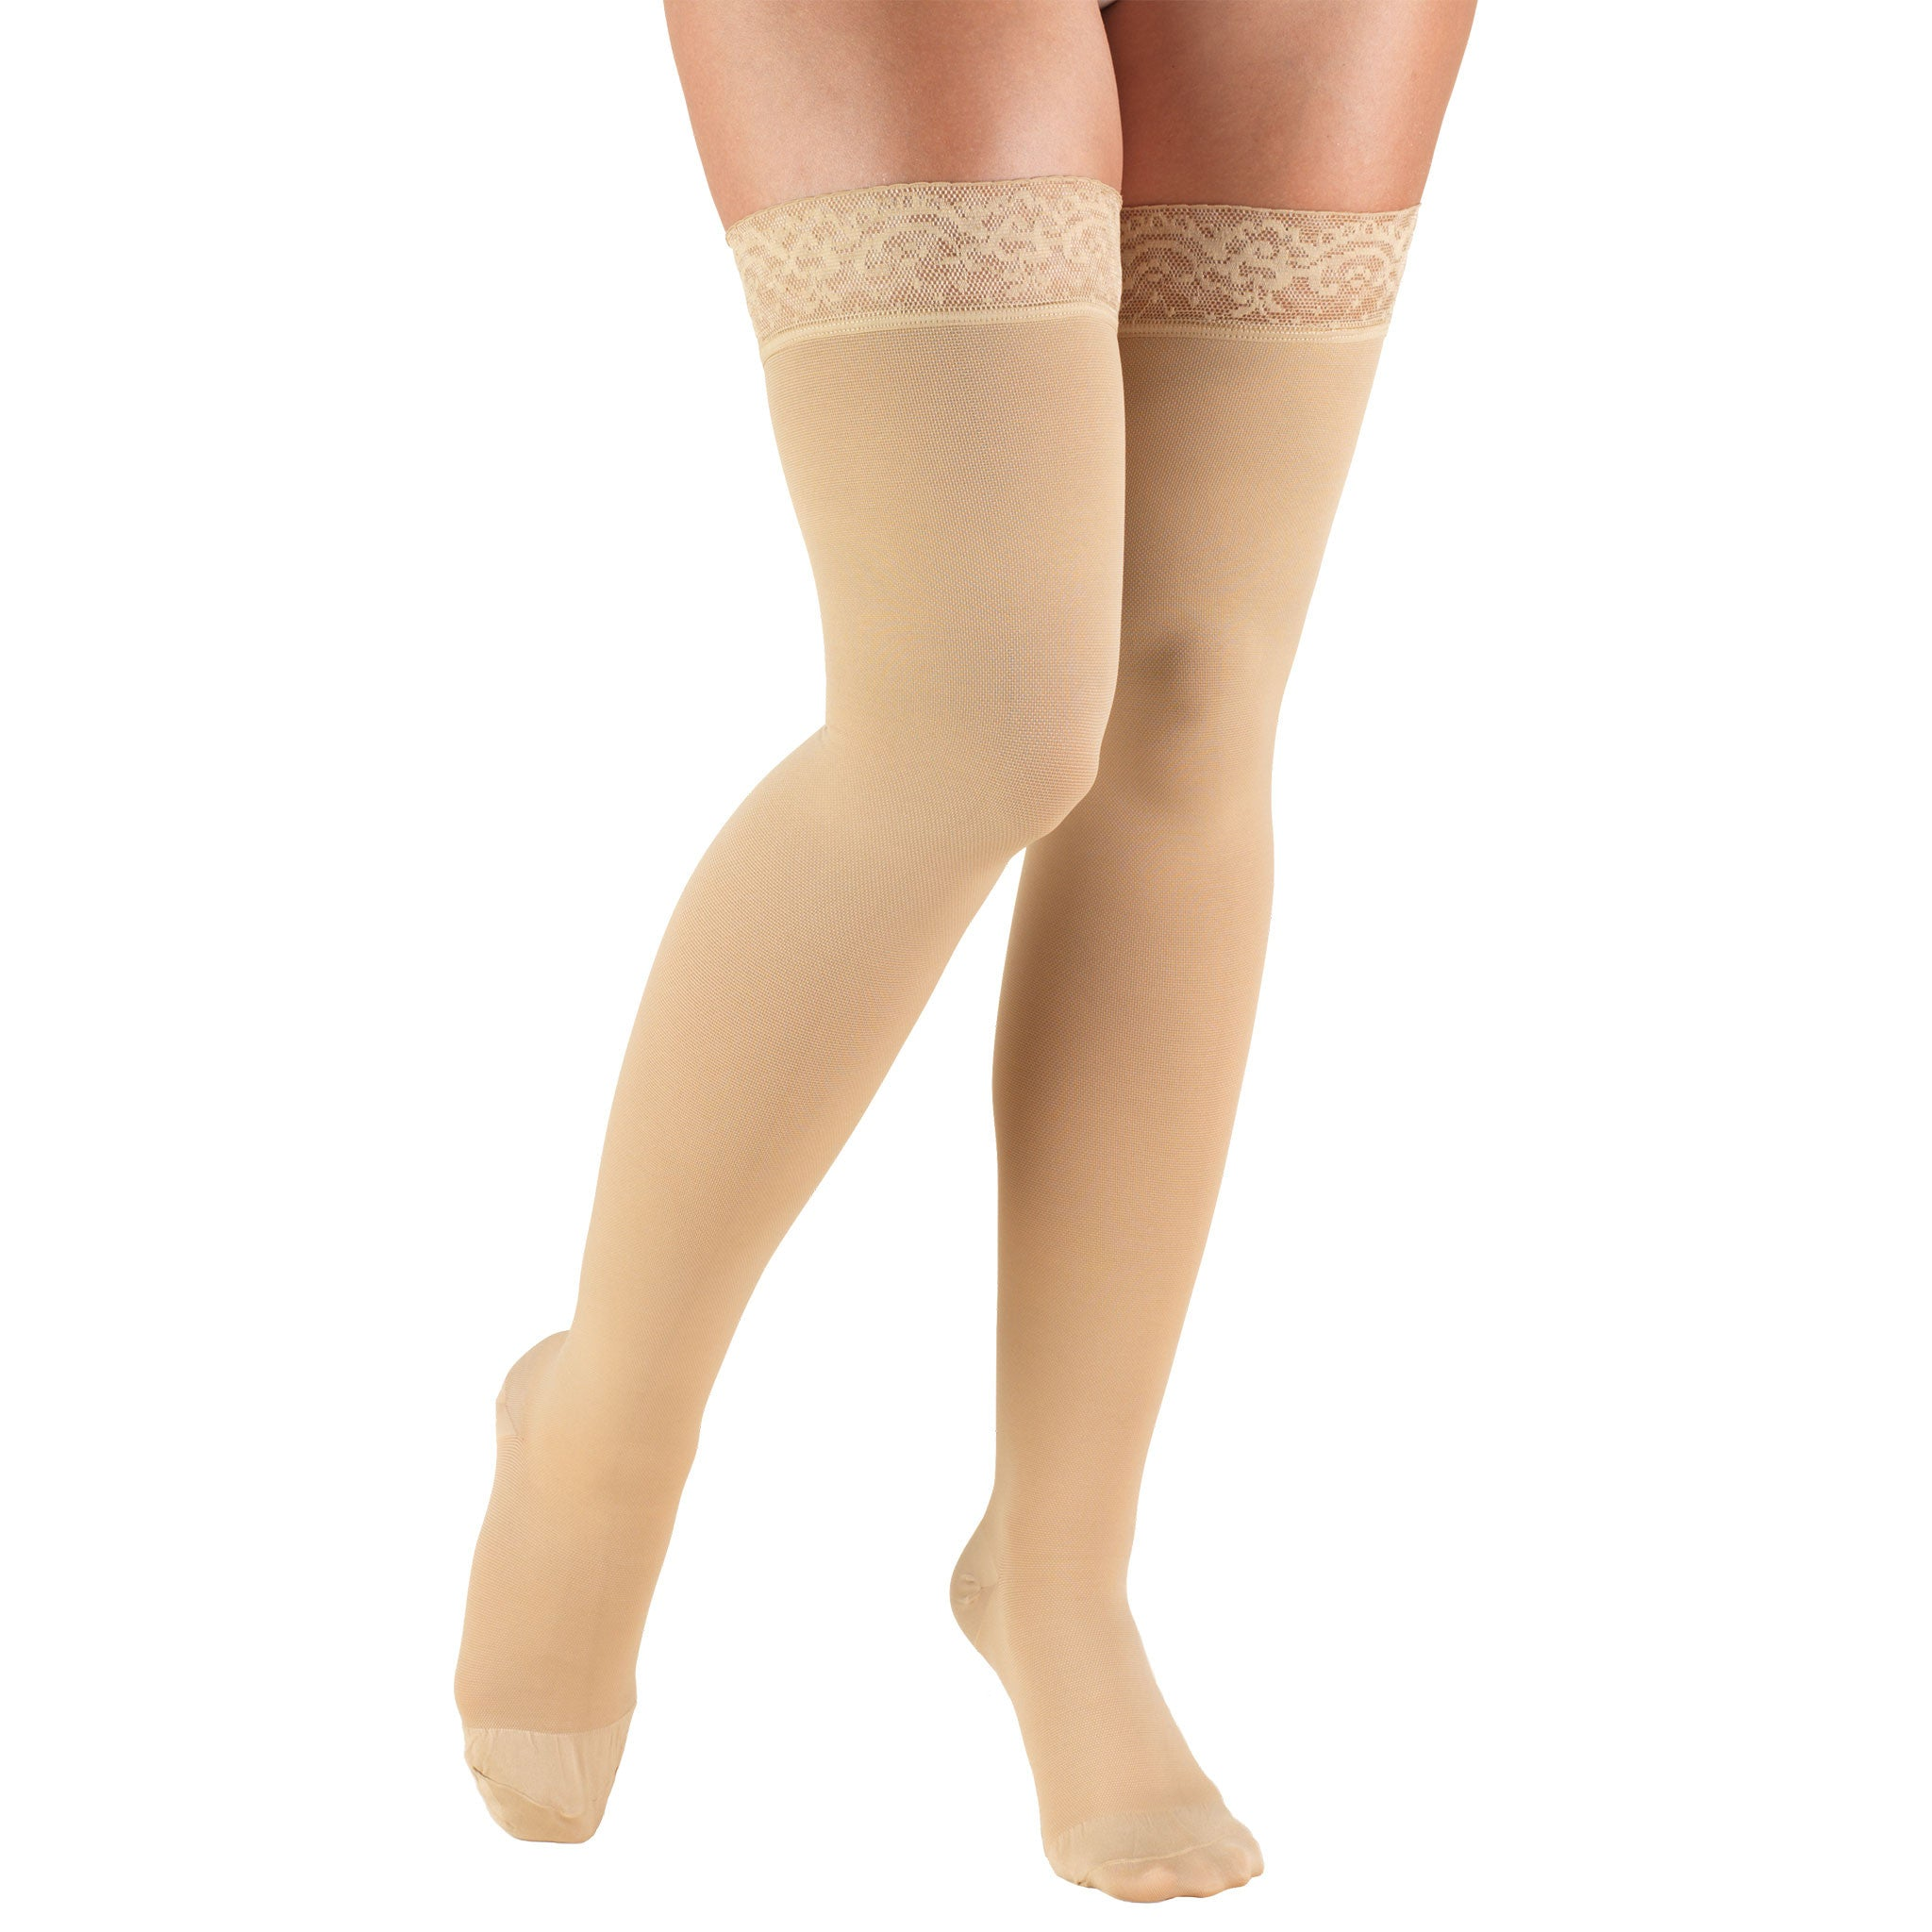 8867 THIGH HIGH CLOSED TOE BEIGE STOCKINGS